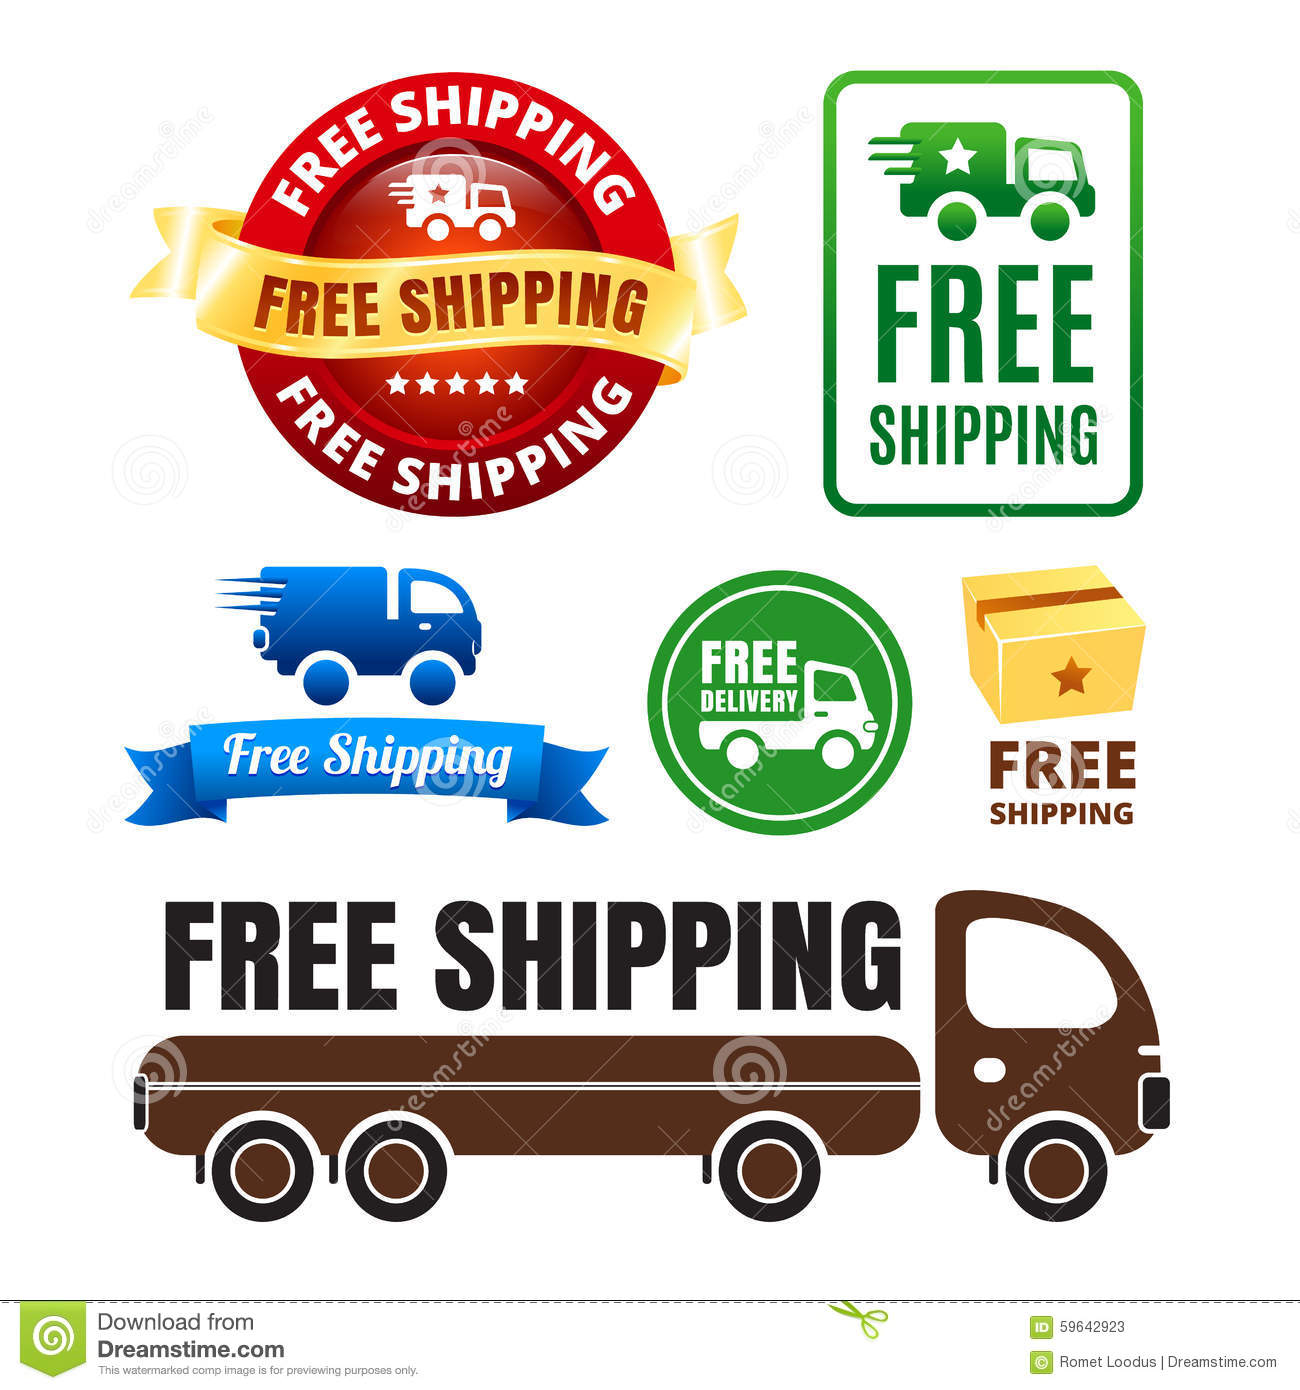 Free Shipping Delivery Truck Brown Royalty-Free Stock Photo | CartoonDealer.com #14909475  Free Shipping D...